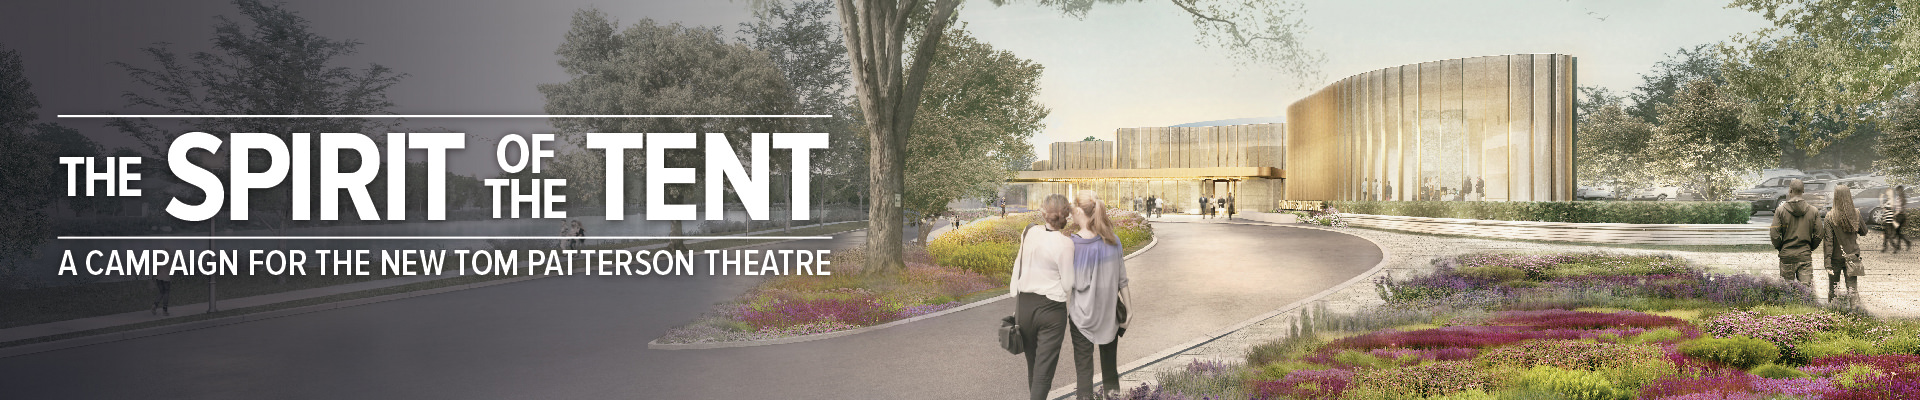 A Campaign for the new Tom Patterson Theatre